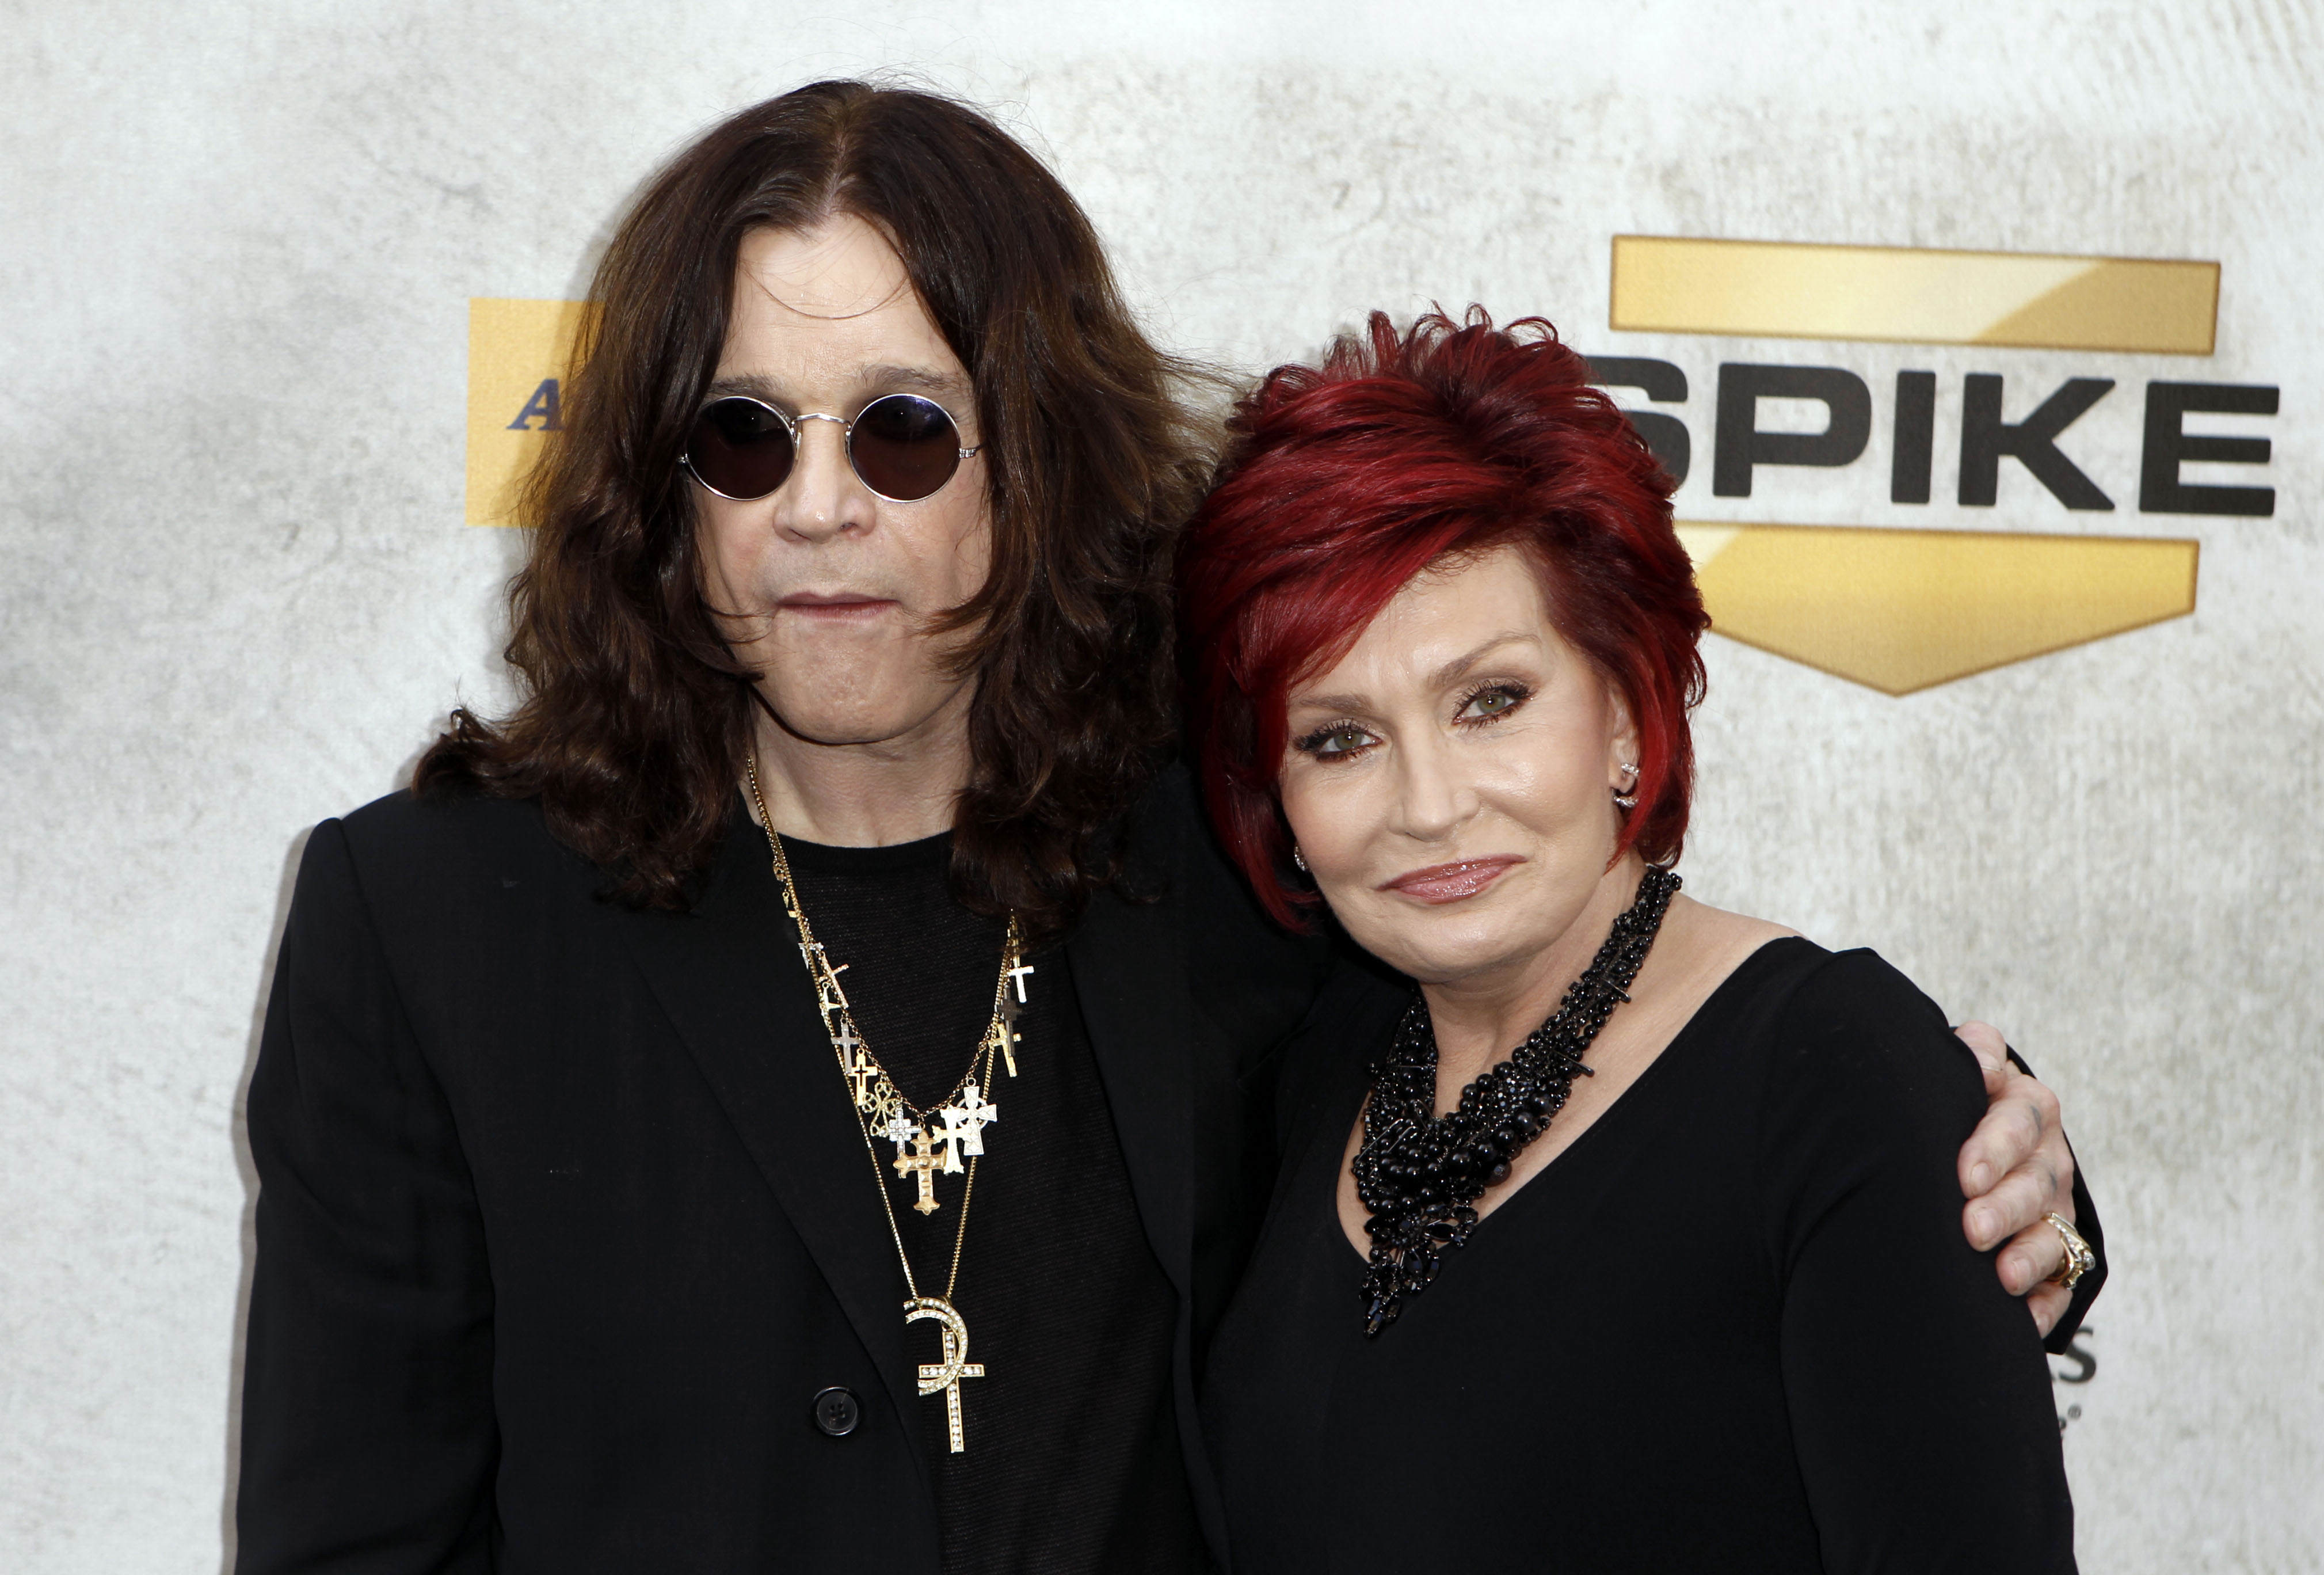 ozzy 1 Ozzy Osbourne Missing After Sharon Kicked Him Out Over Affair Claims